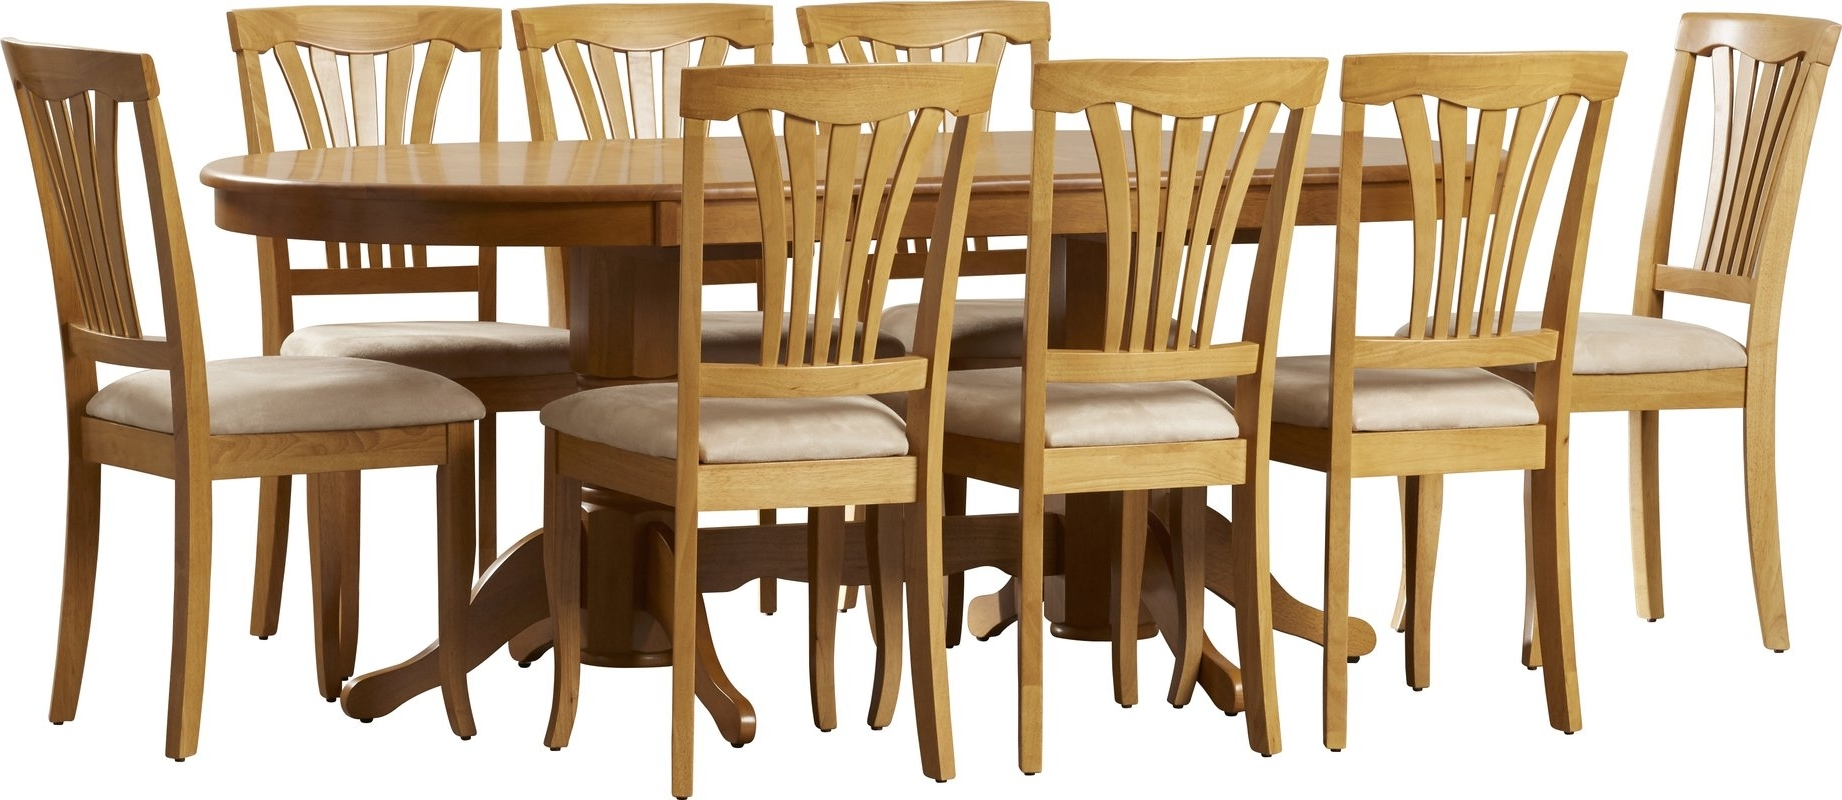 [%100+ [ 9 Piece Dining Room Sets ] | 100 9 Pc Dining Room Sets Lark Pertaining To Best And Newest Caira 9 Piece Extension Dining Sets|Caira 9 Piece Extension Dining Sets For Well Known 100+ [ 9 Piece Dining Room Sets ] | 100 9 Pc Dining Room Sets Lark|2017 Caira 9 Piece Extension Dining Sets In 100+ [ 9 Piece Dining Room Sets ] | 100 9 Pc Dining Room Sets Lark|Widely Used 100+ [ 9 Piece Dining Room Sets ] | 100 9 Pc Dining Room Sets Lark Inside Caira 9 Piece Extension Dining Sets%] (View 11 of 25)